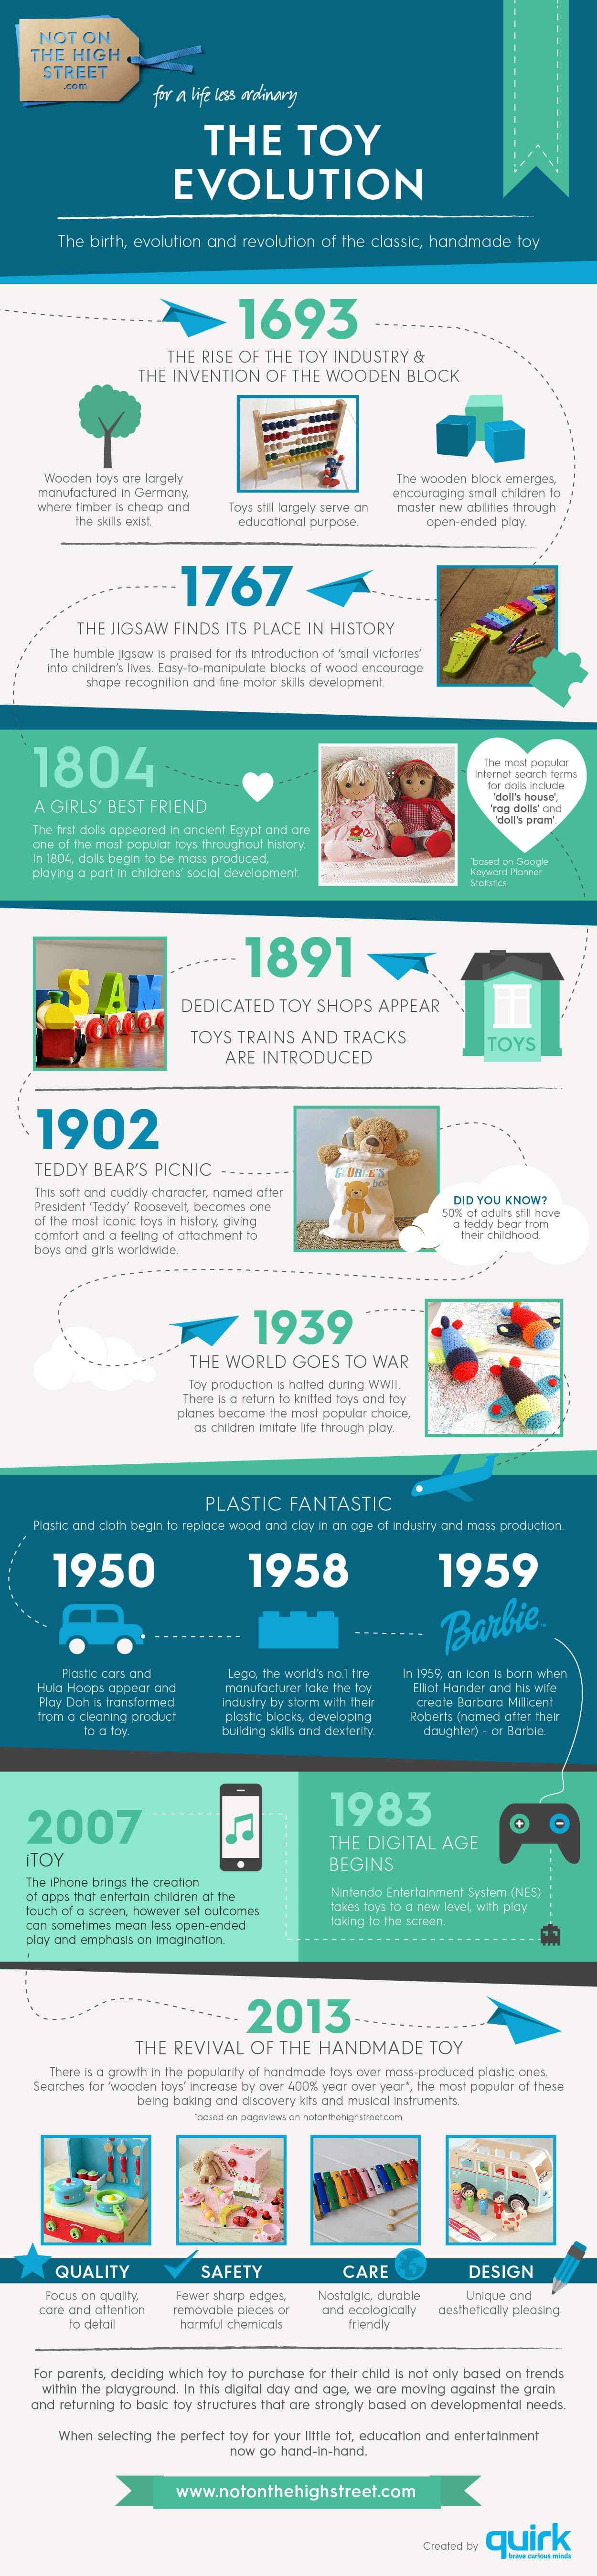 the-toy-evolution-infographic